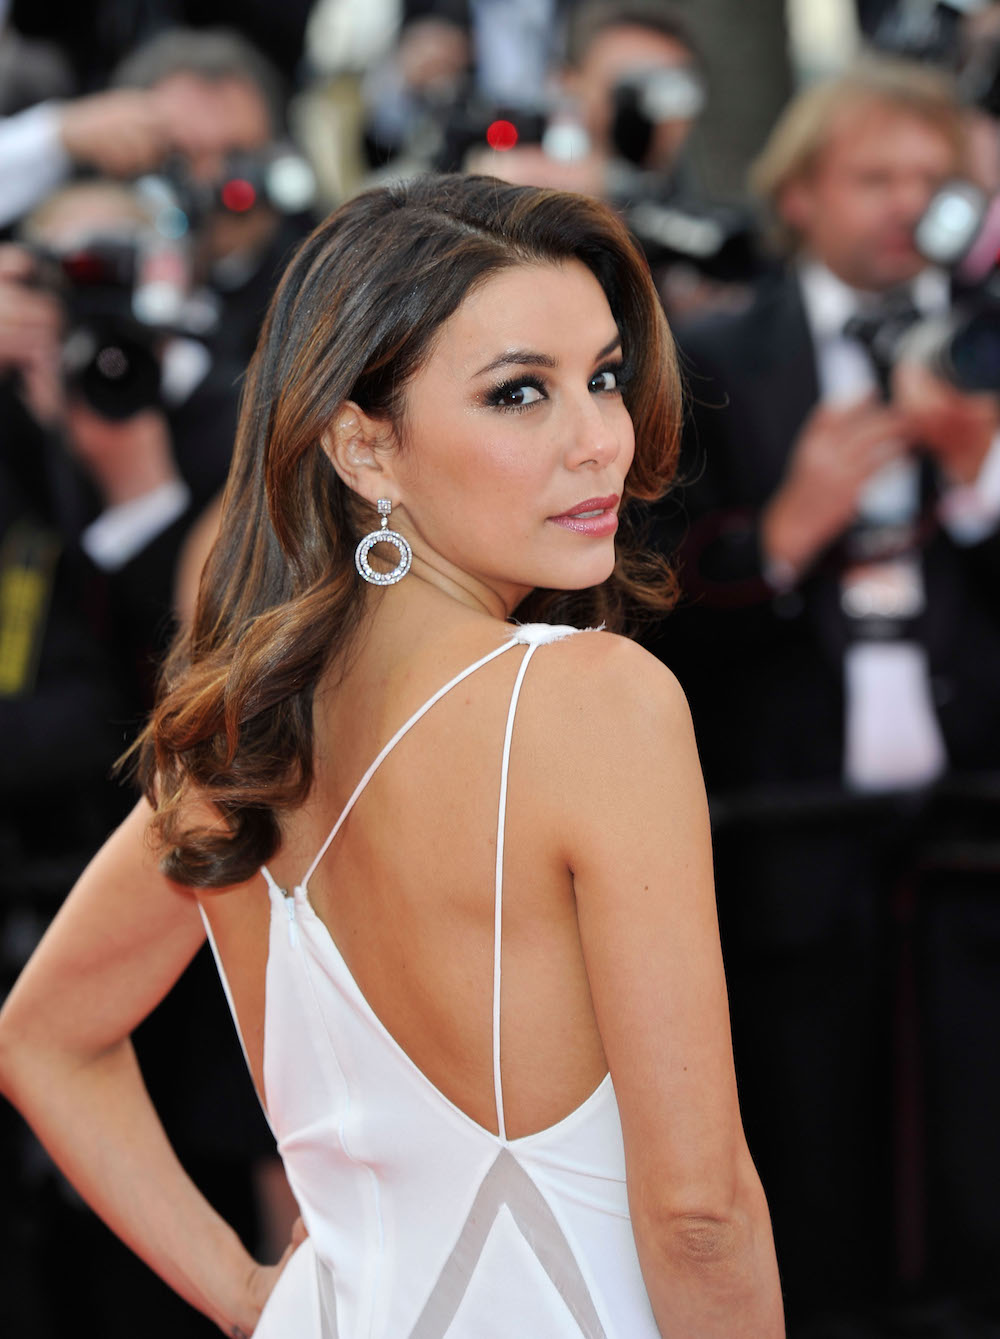 Eva Longoria em 2014 no Festival de Cannes© Getty Images